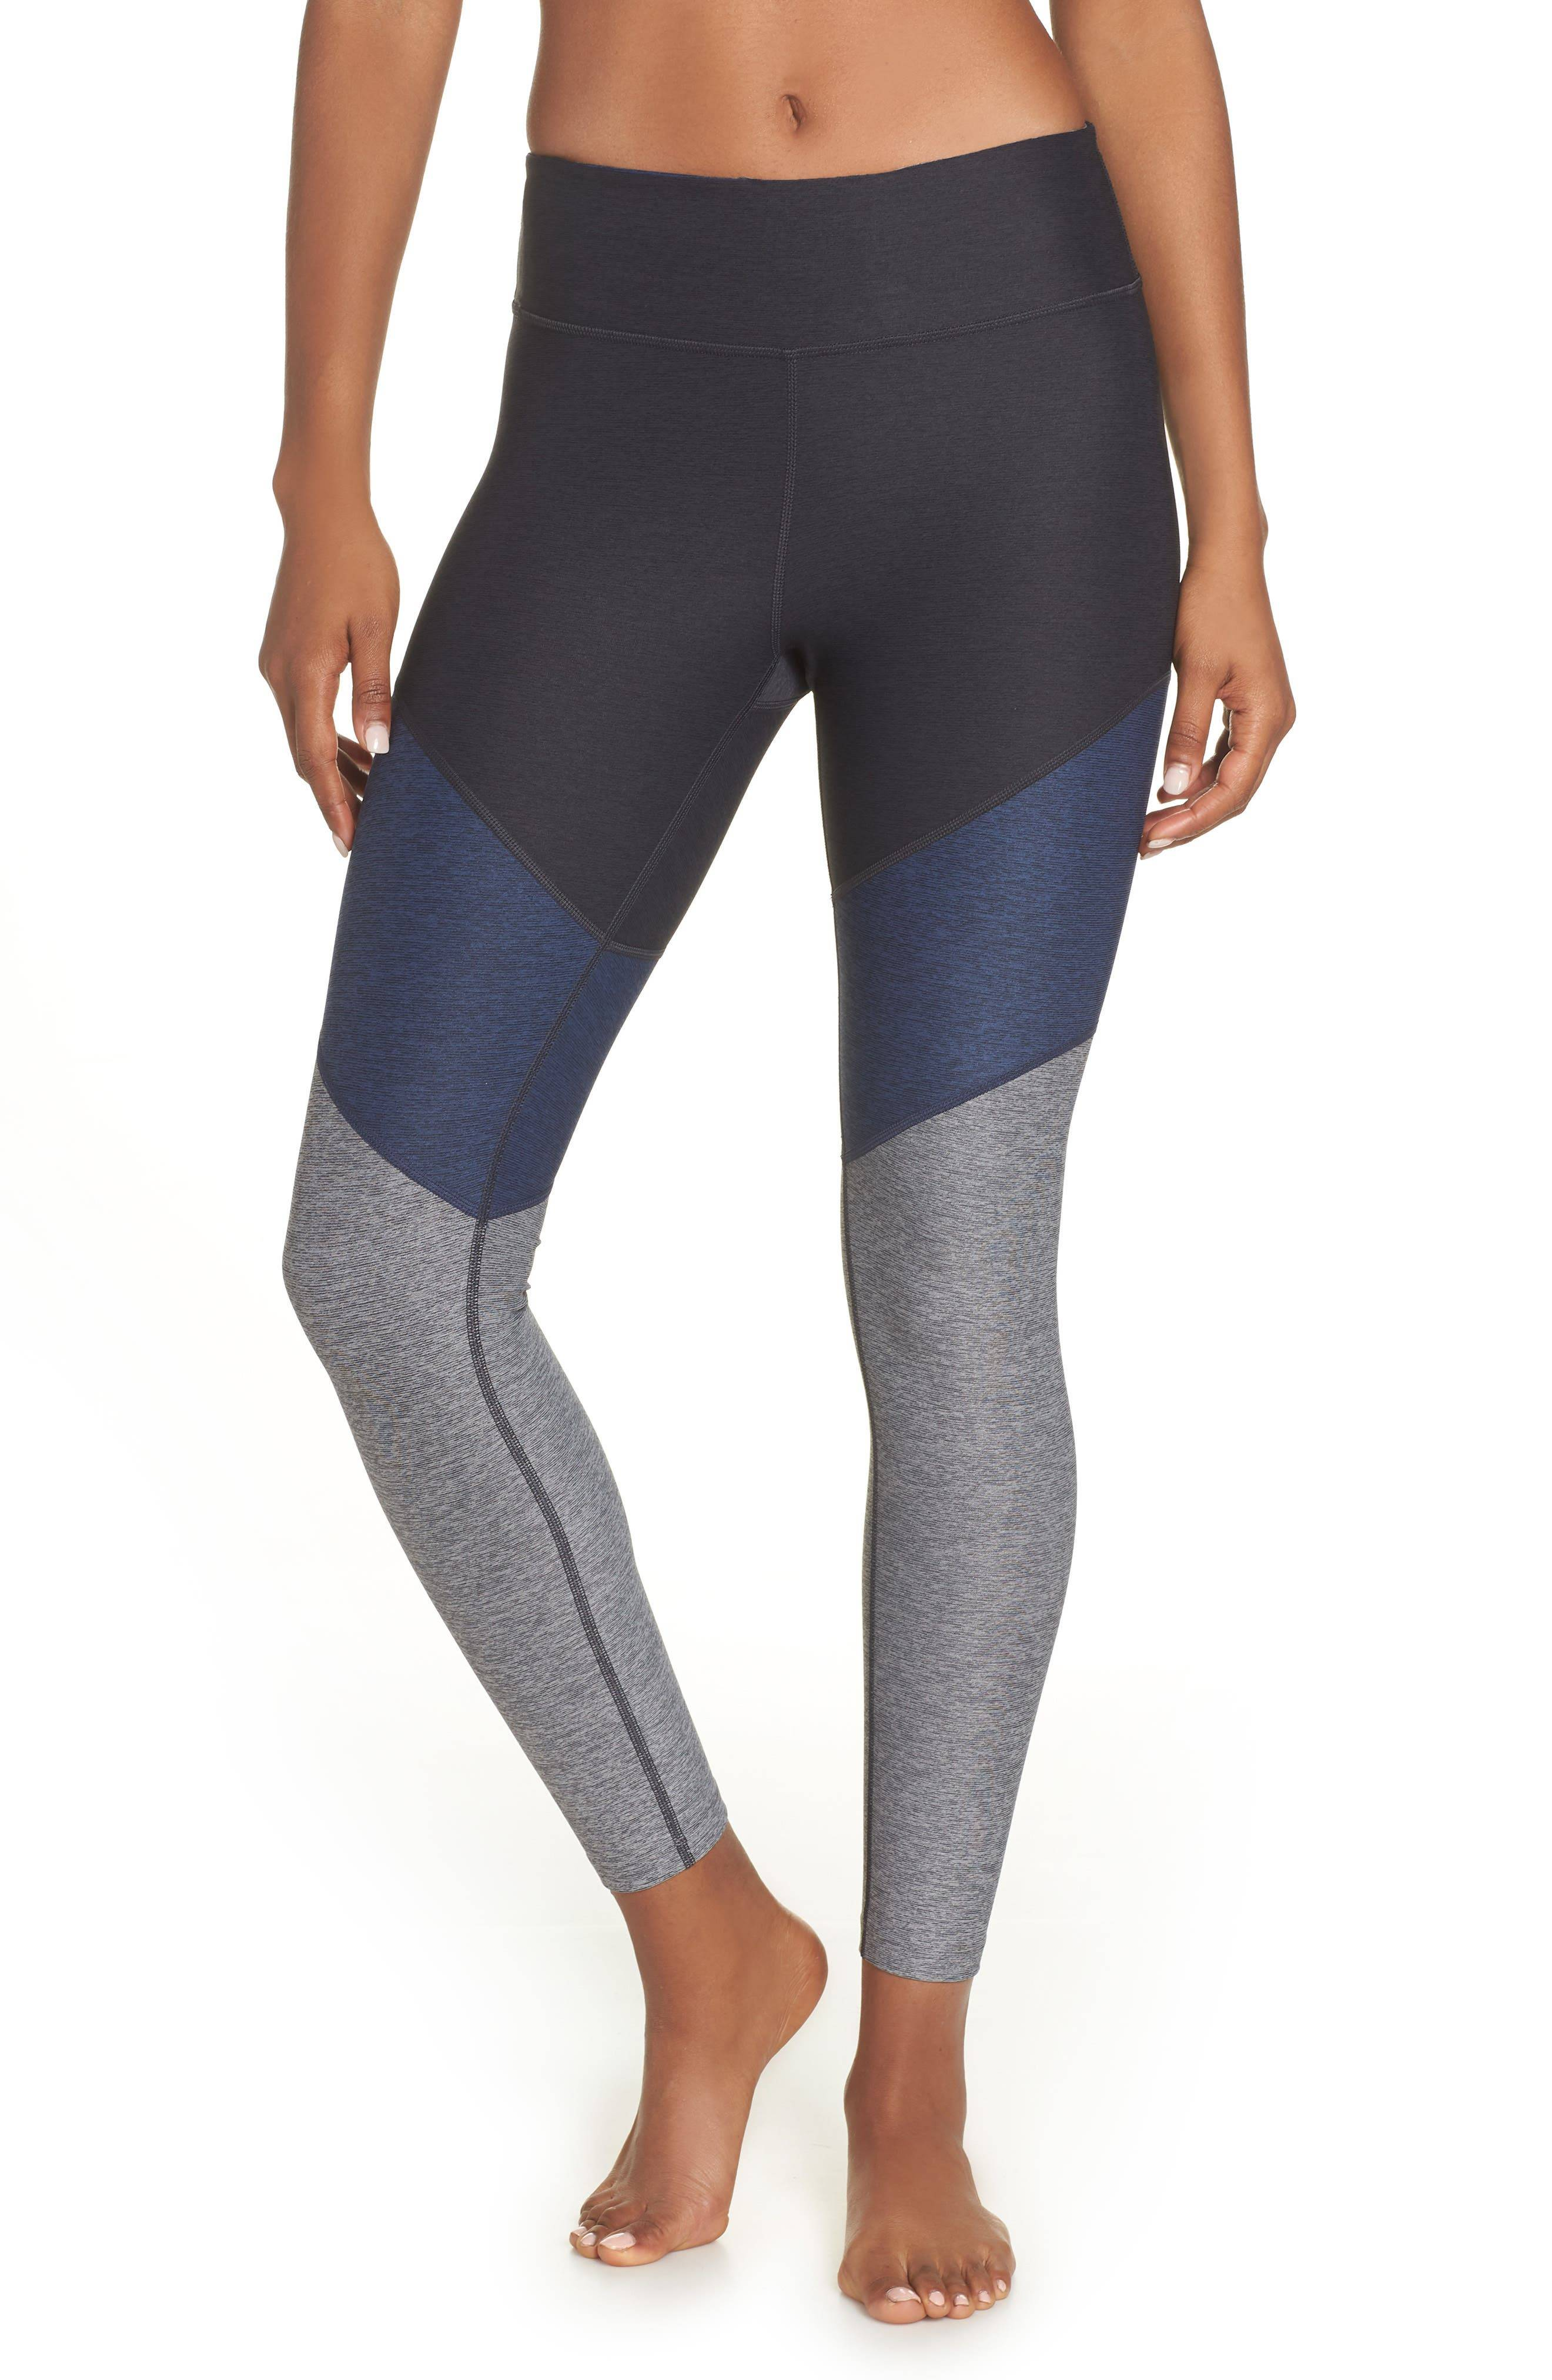 Outdoor Voices Women's Outdoor Voices 7/8 Springs Leggings, Size X-Large - Black